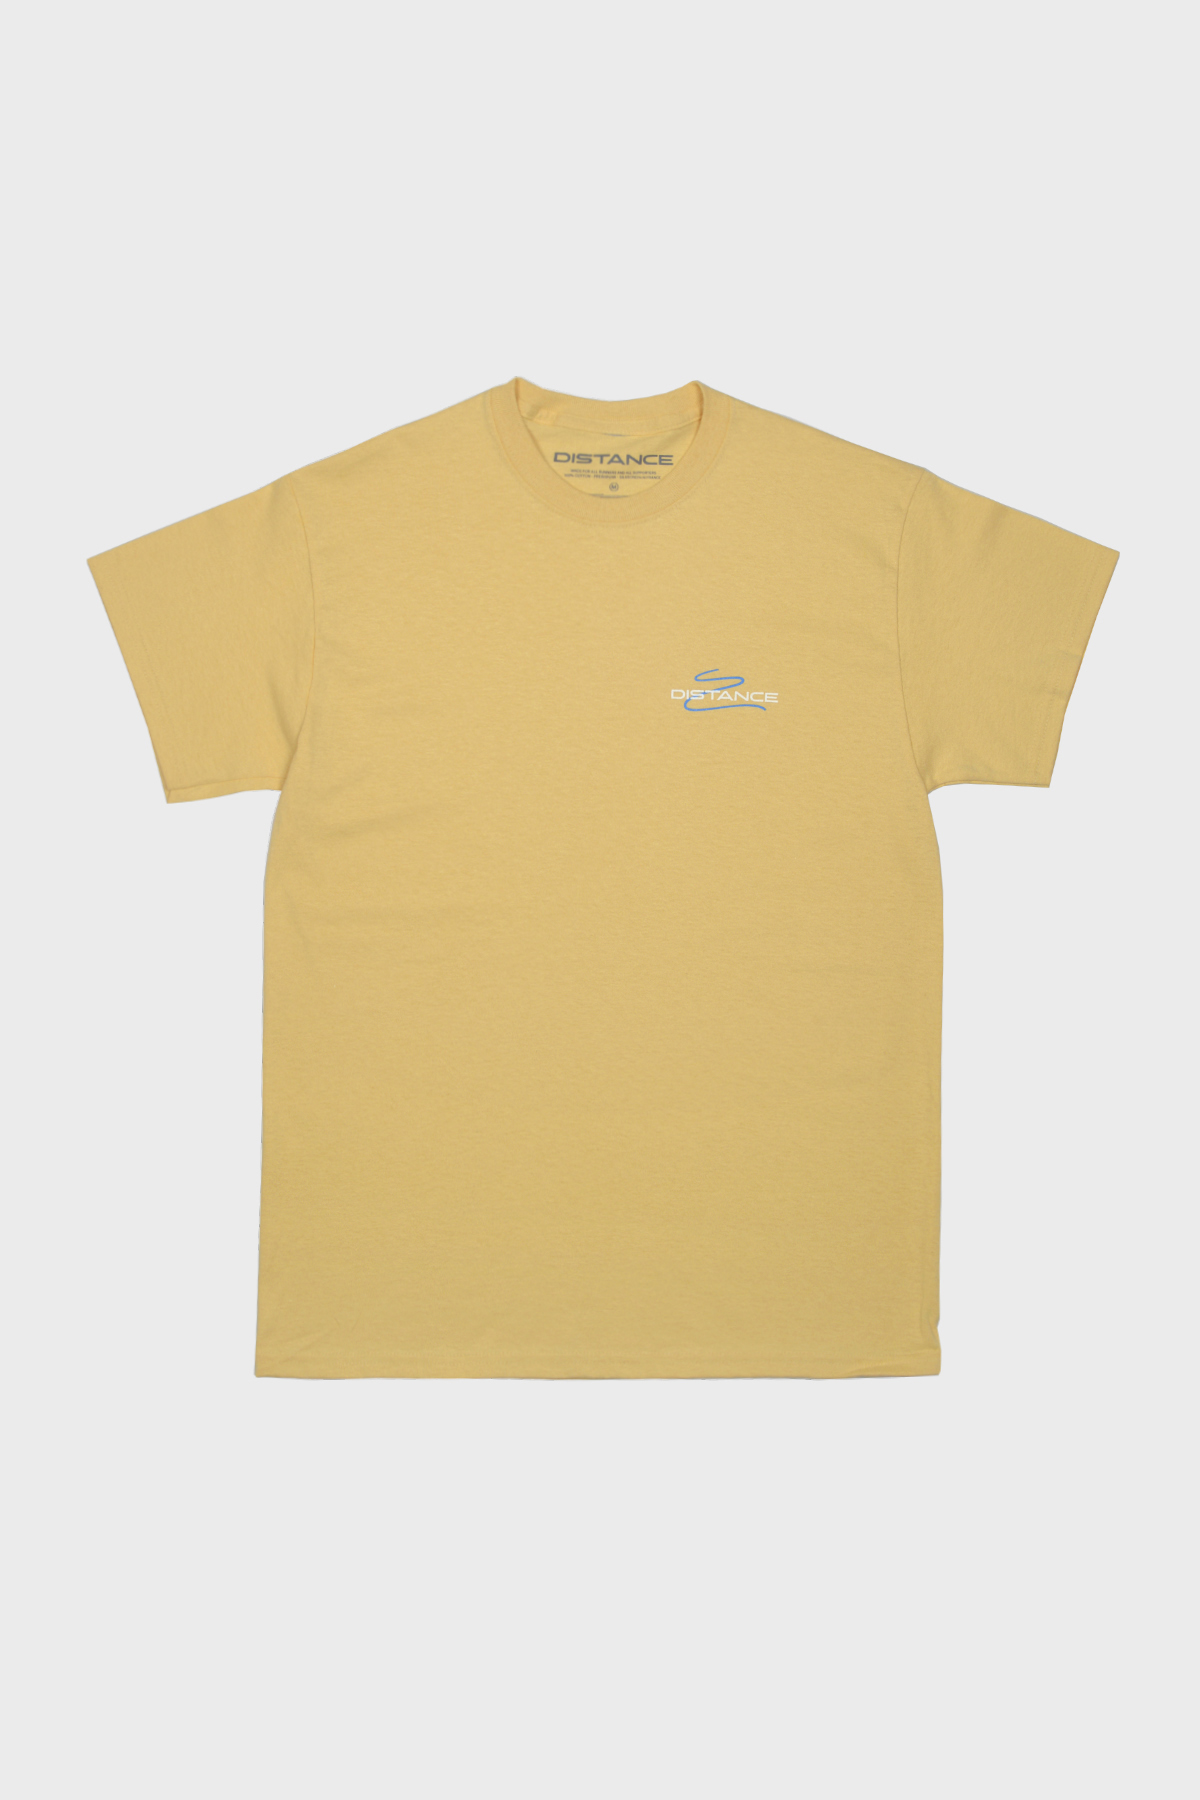 Distance - Squiggle Tee - Yellow Blue